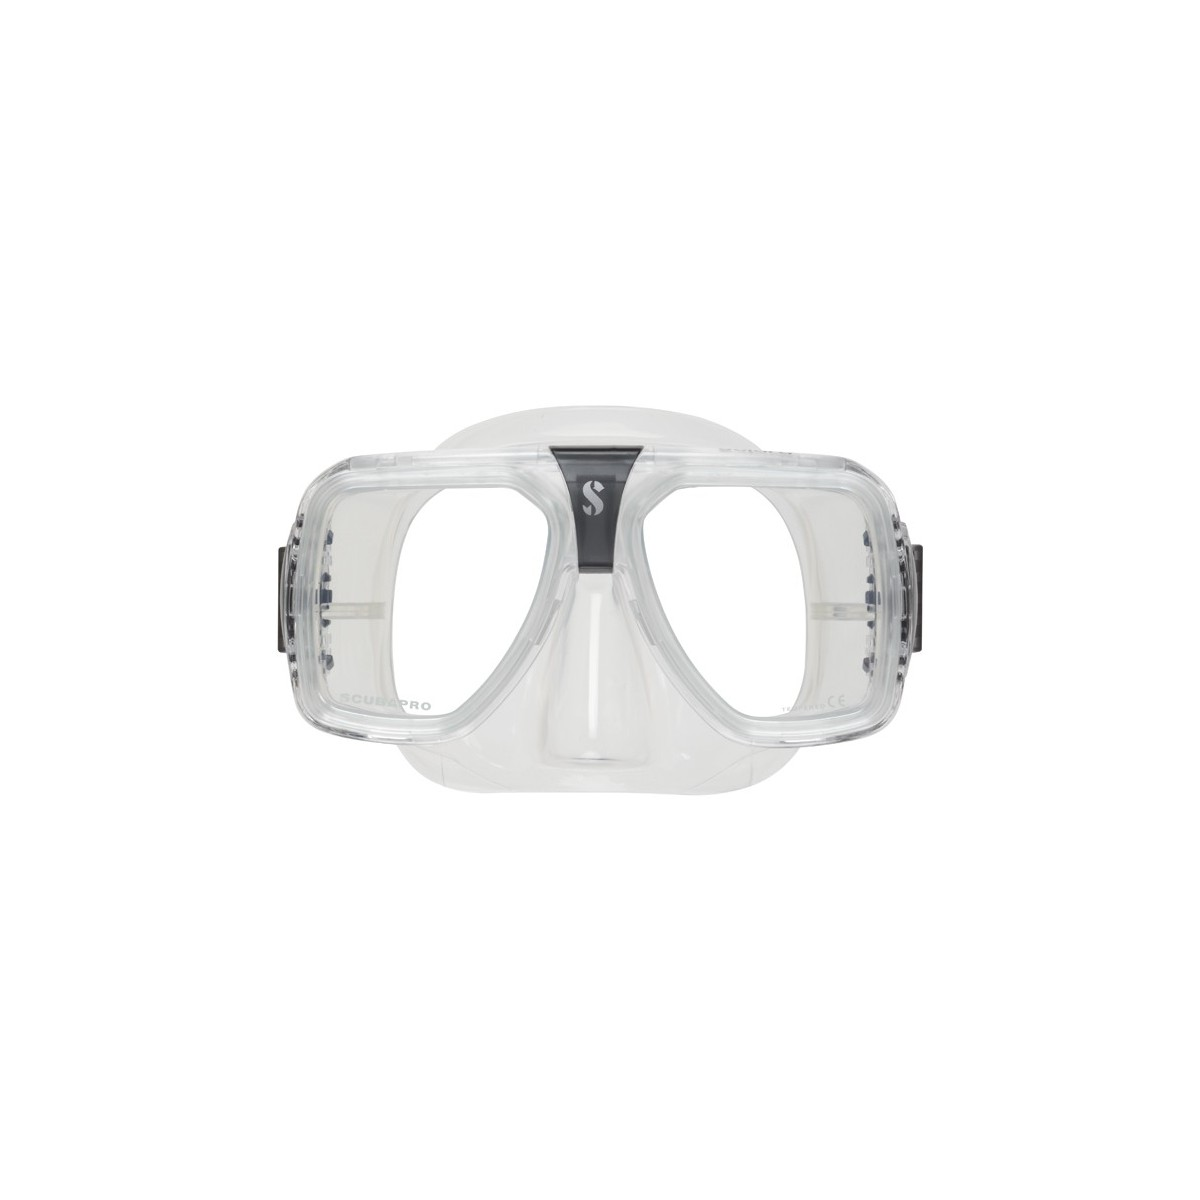 Scubapro Solara Scuba Diving Mask